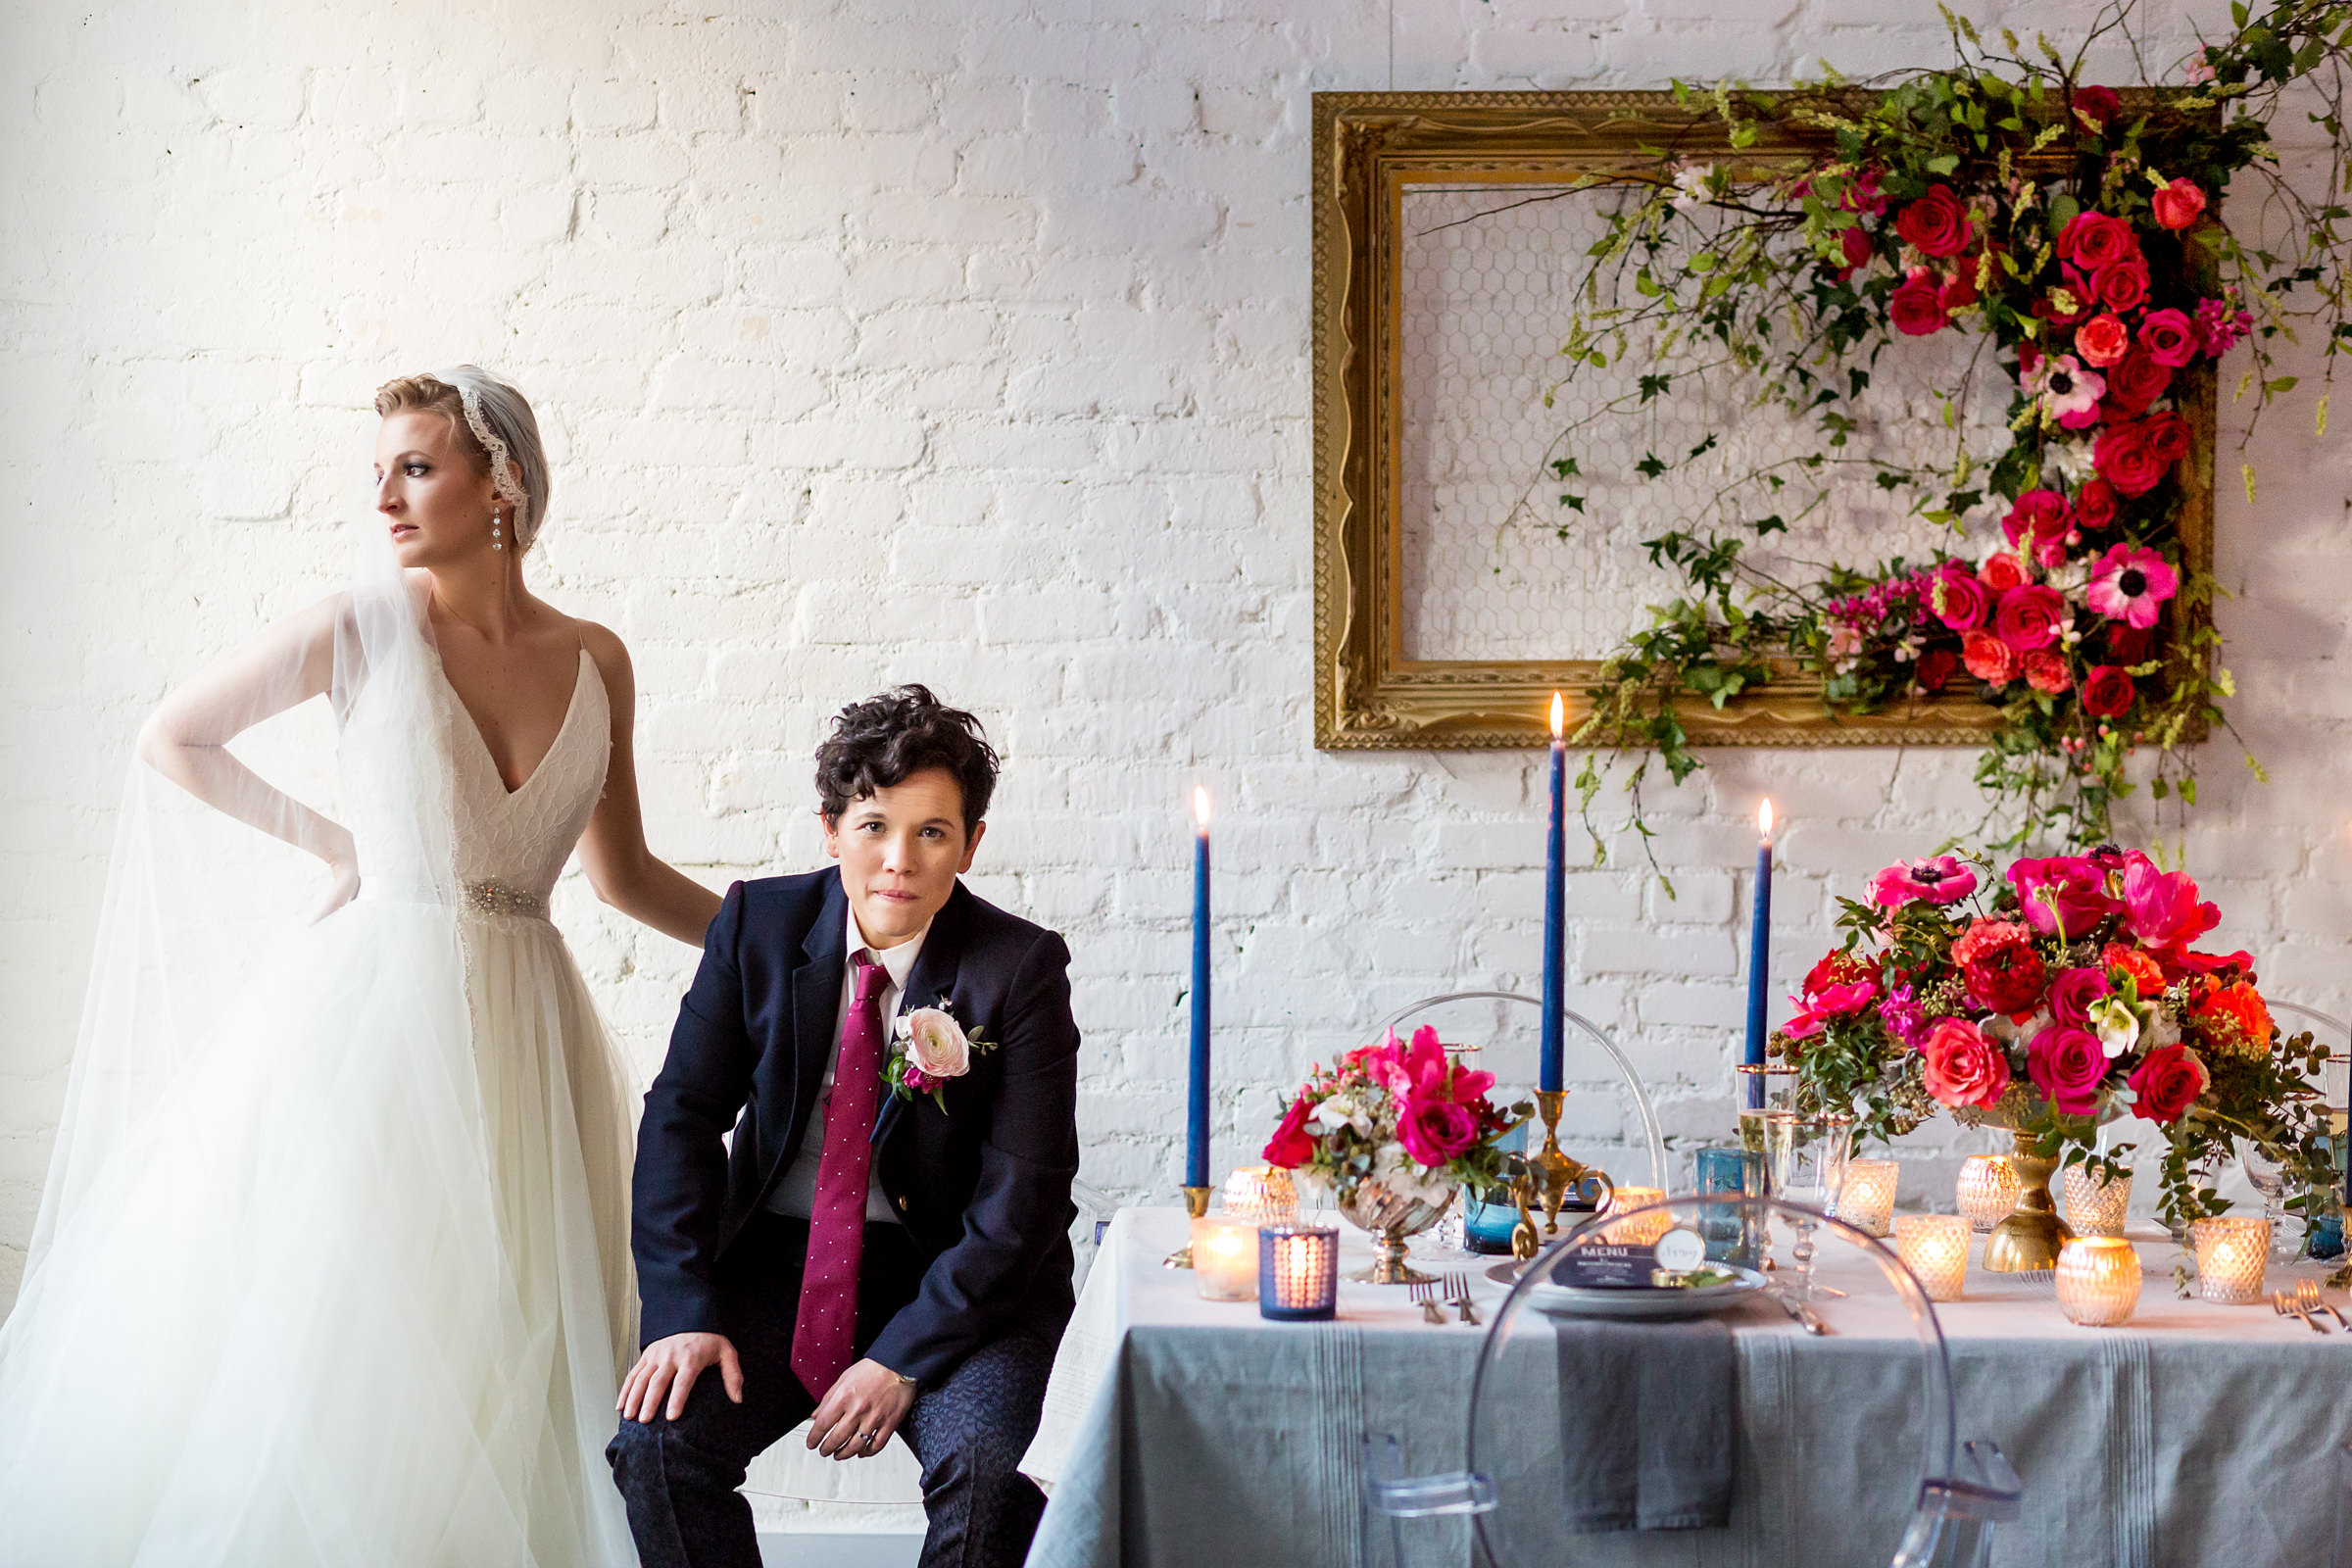 Brides at decorated table - photo by Procopio Photography